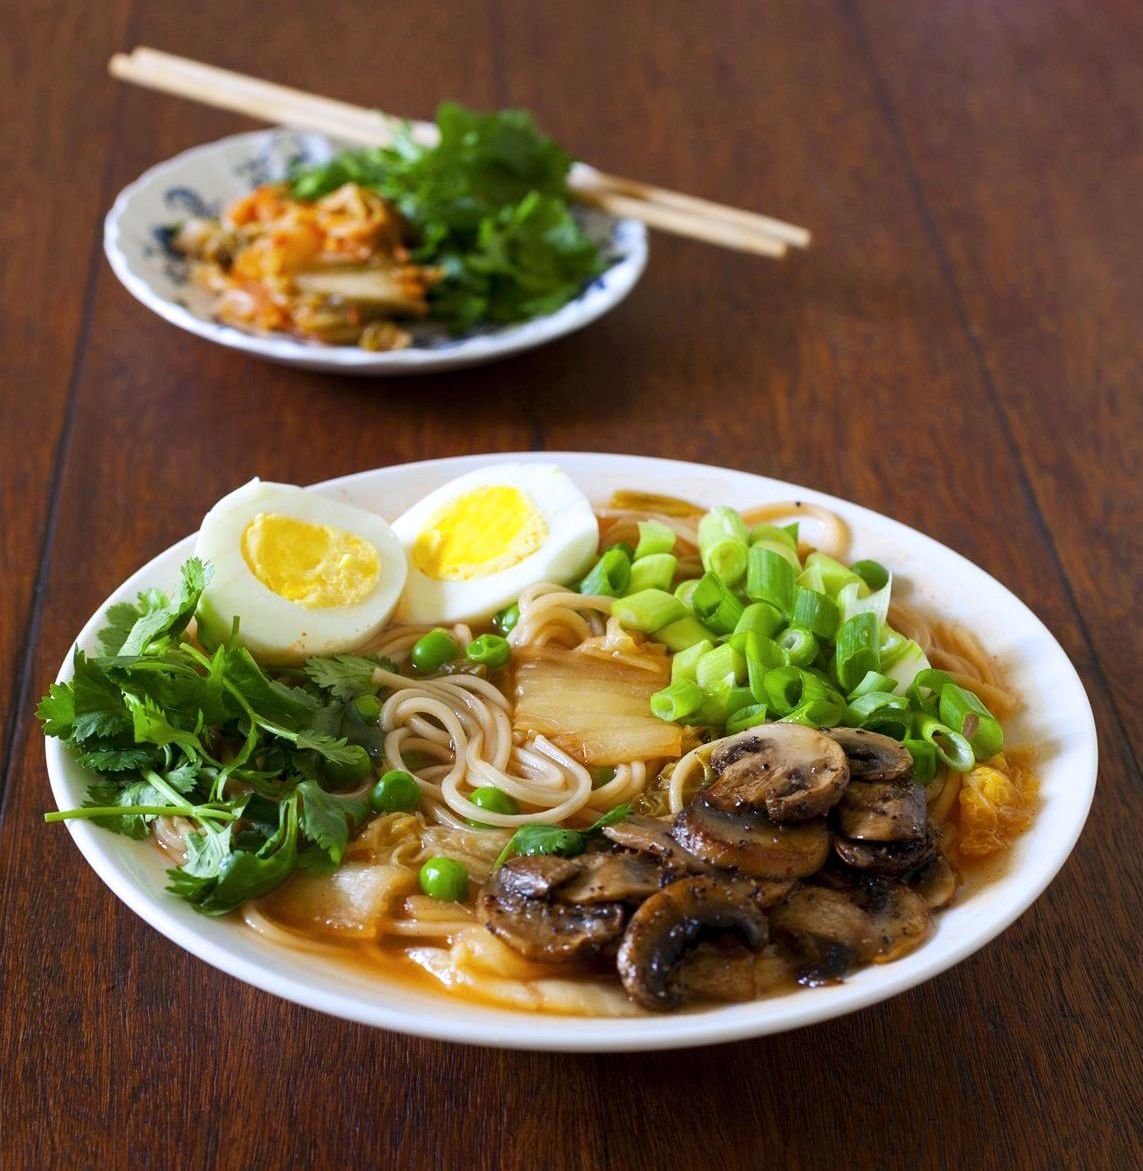 vegetarian recipe broth ramen 2012 a The July \ 3:37 Comment 19, \ Partial Ingredients pm by Leave